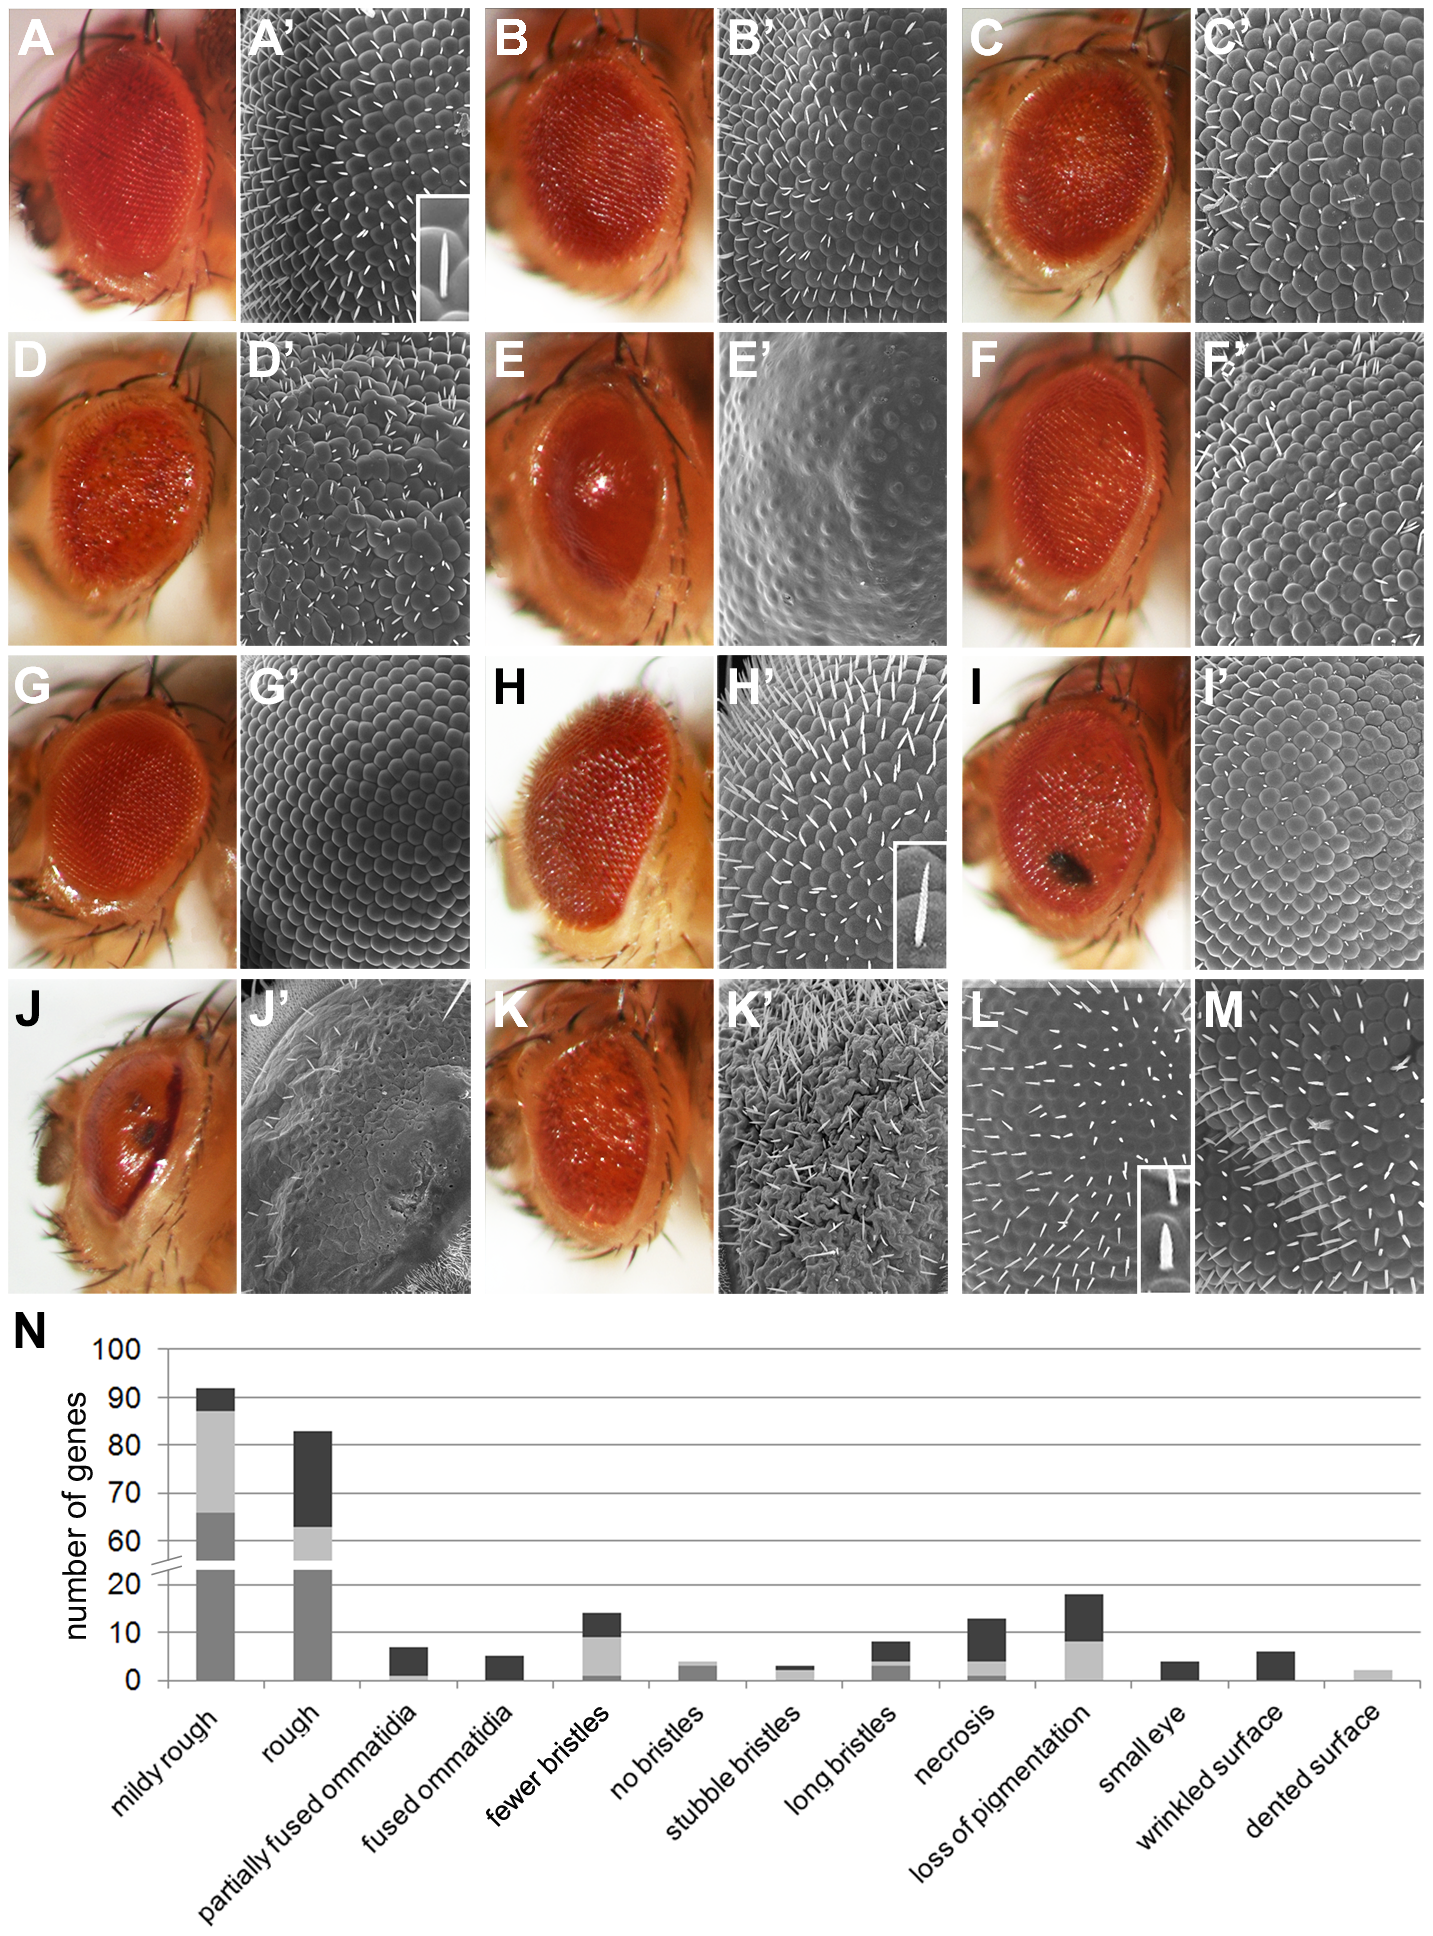 Eye morphology defects of <i>Drosophila</i> ID models.